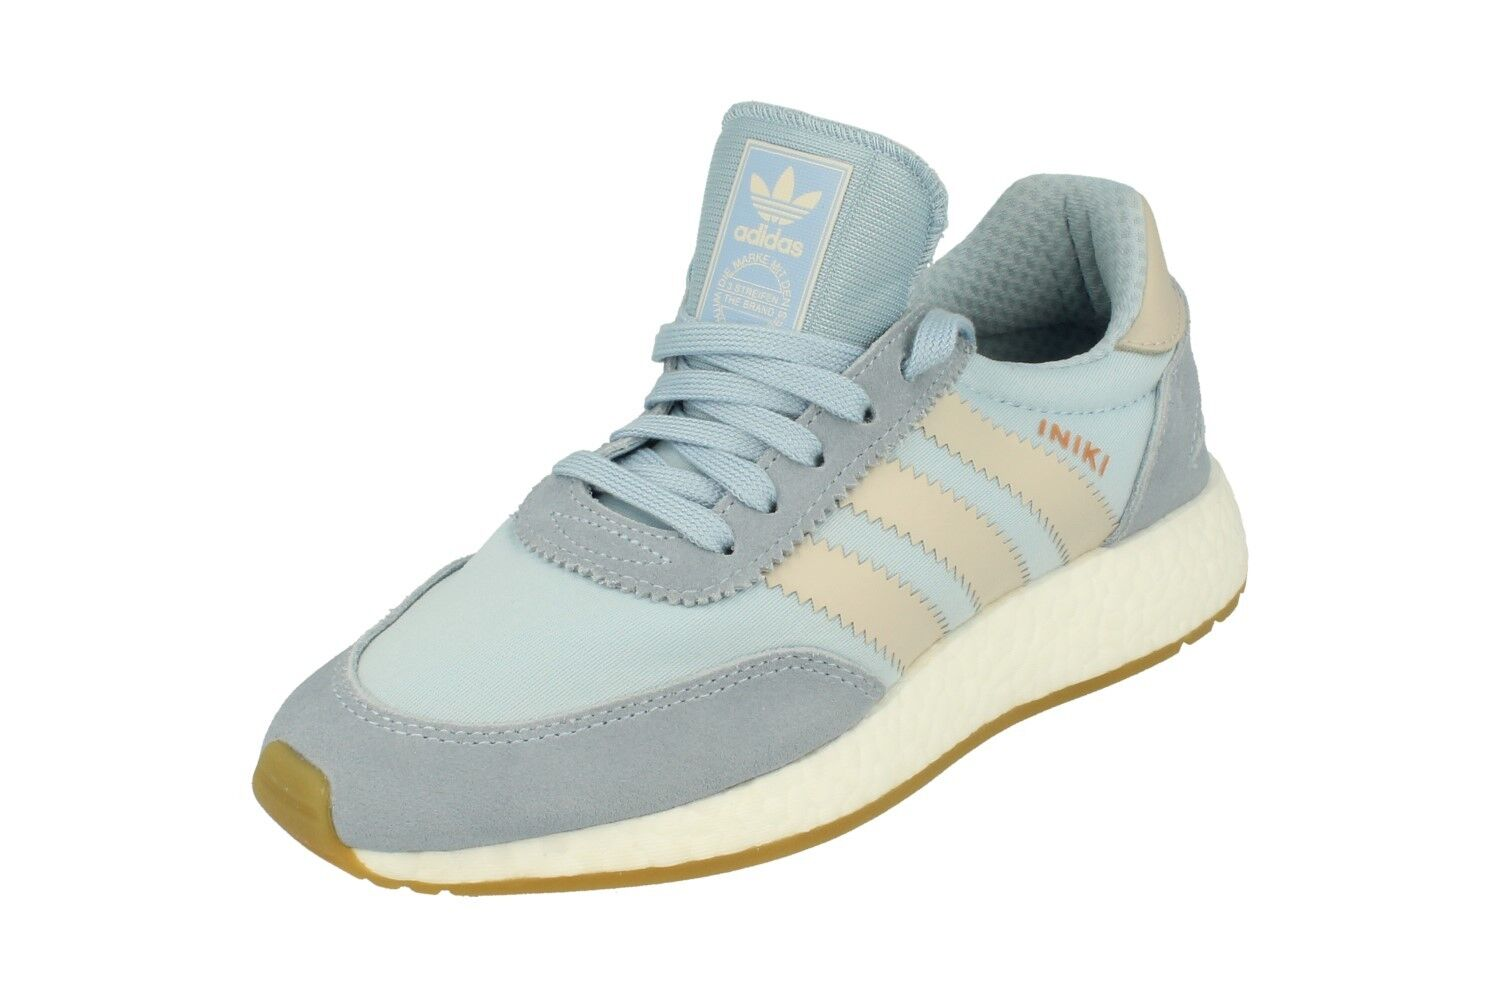 Adidas Originals Iniki Runner Mens Running Trainers Sneakers BB2099